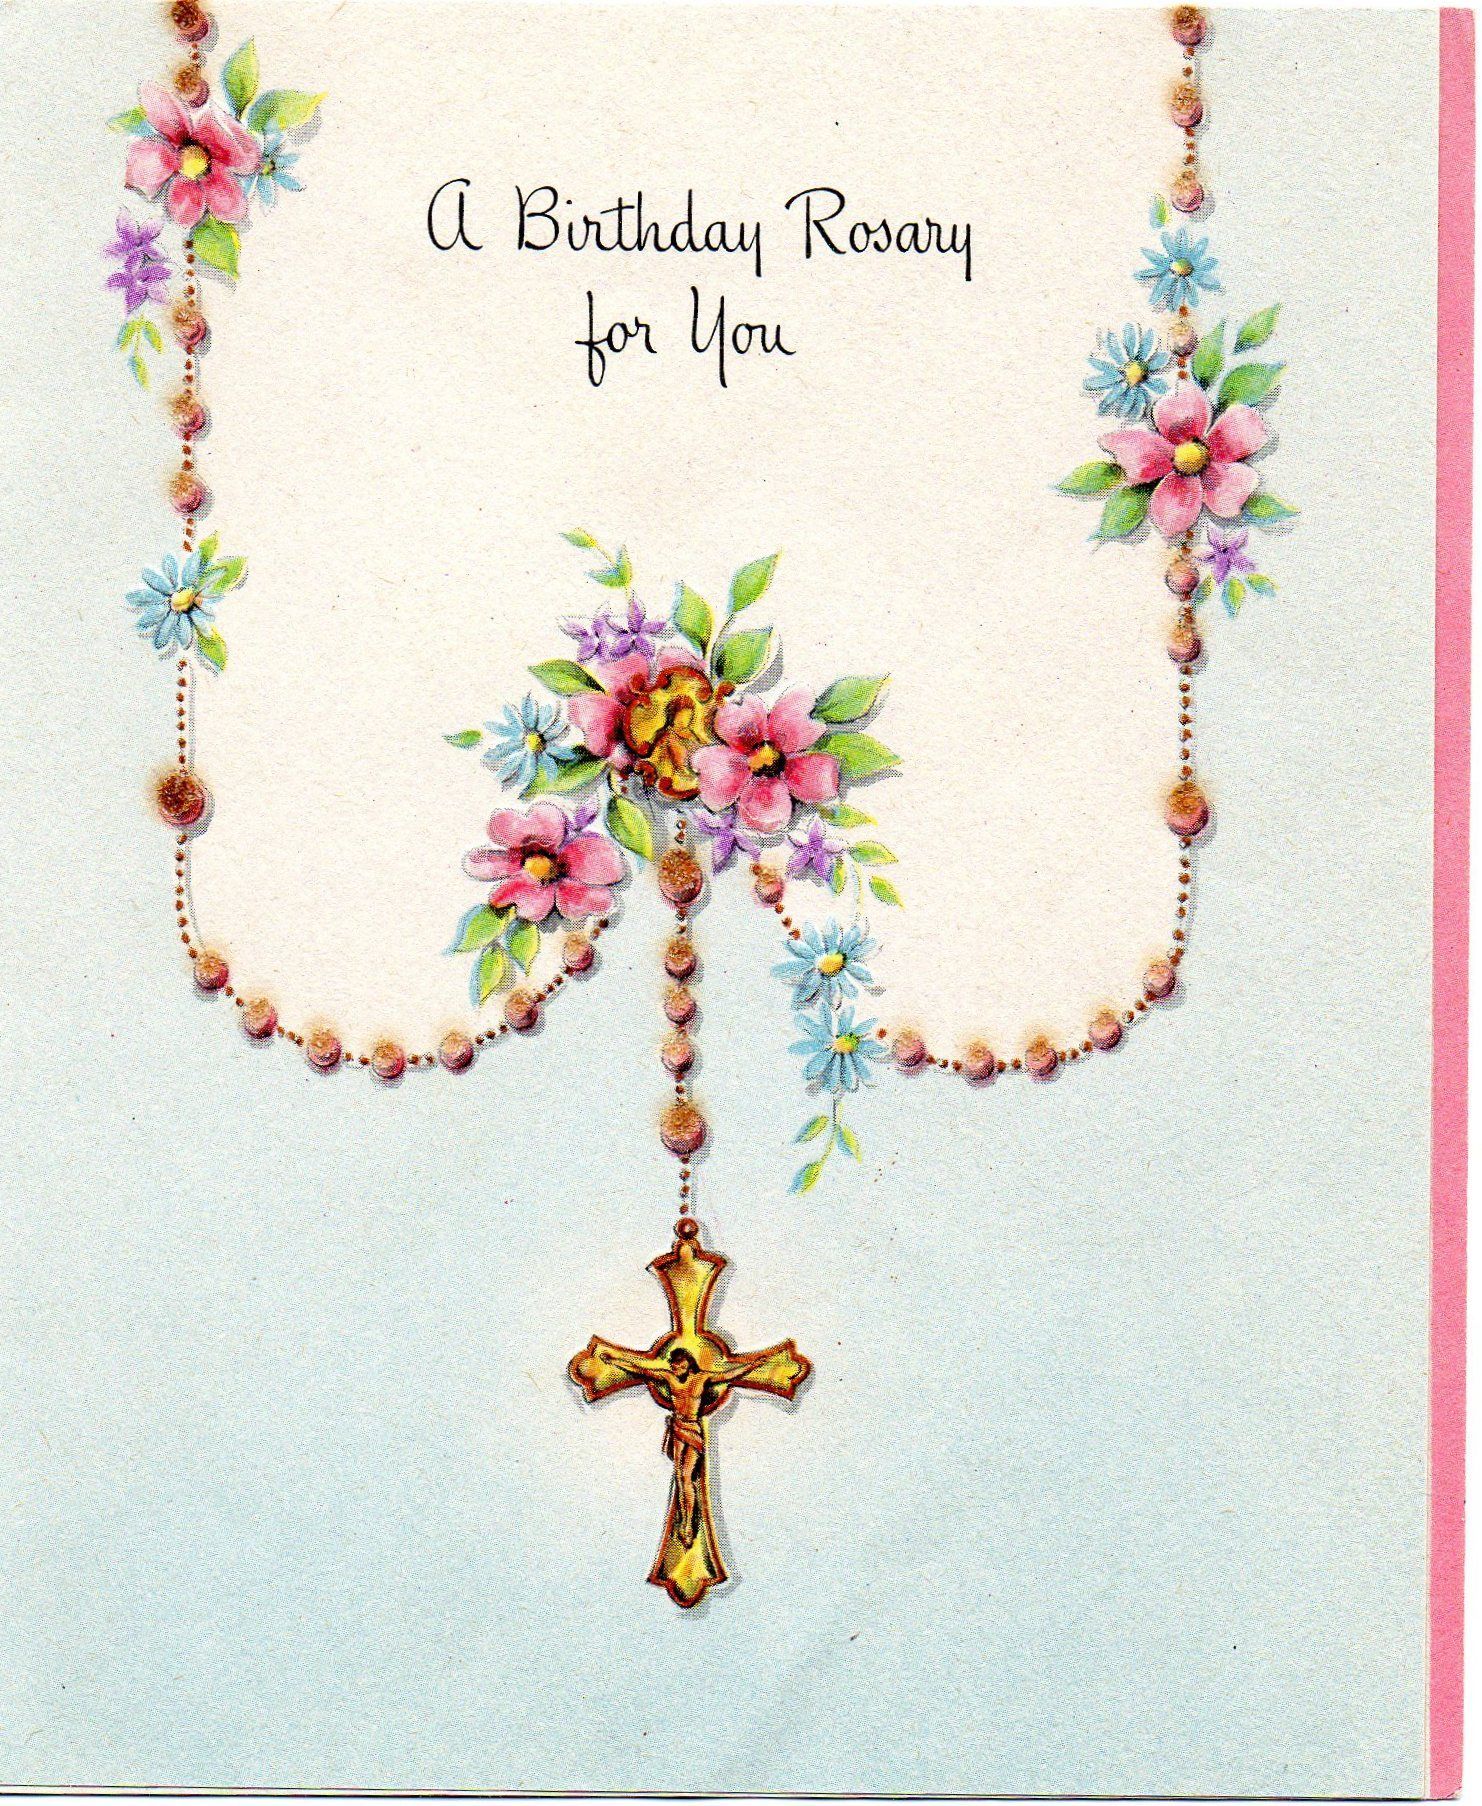 A Birthday Rosary for You...May God watch over you each